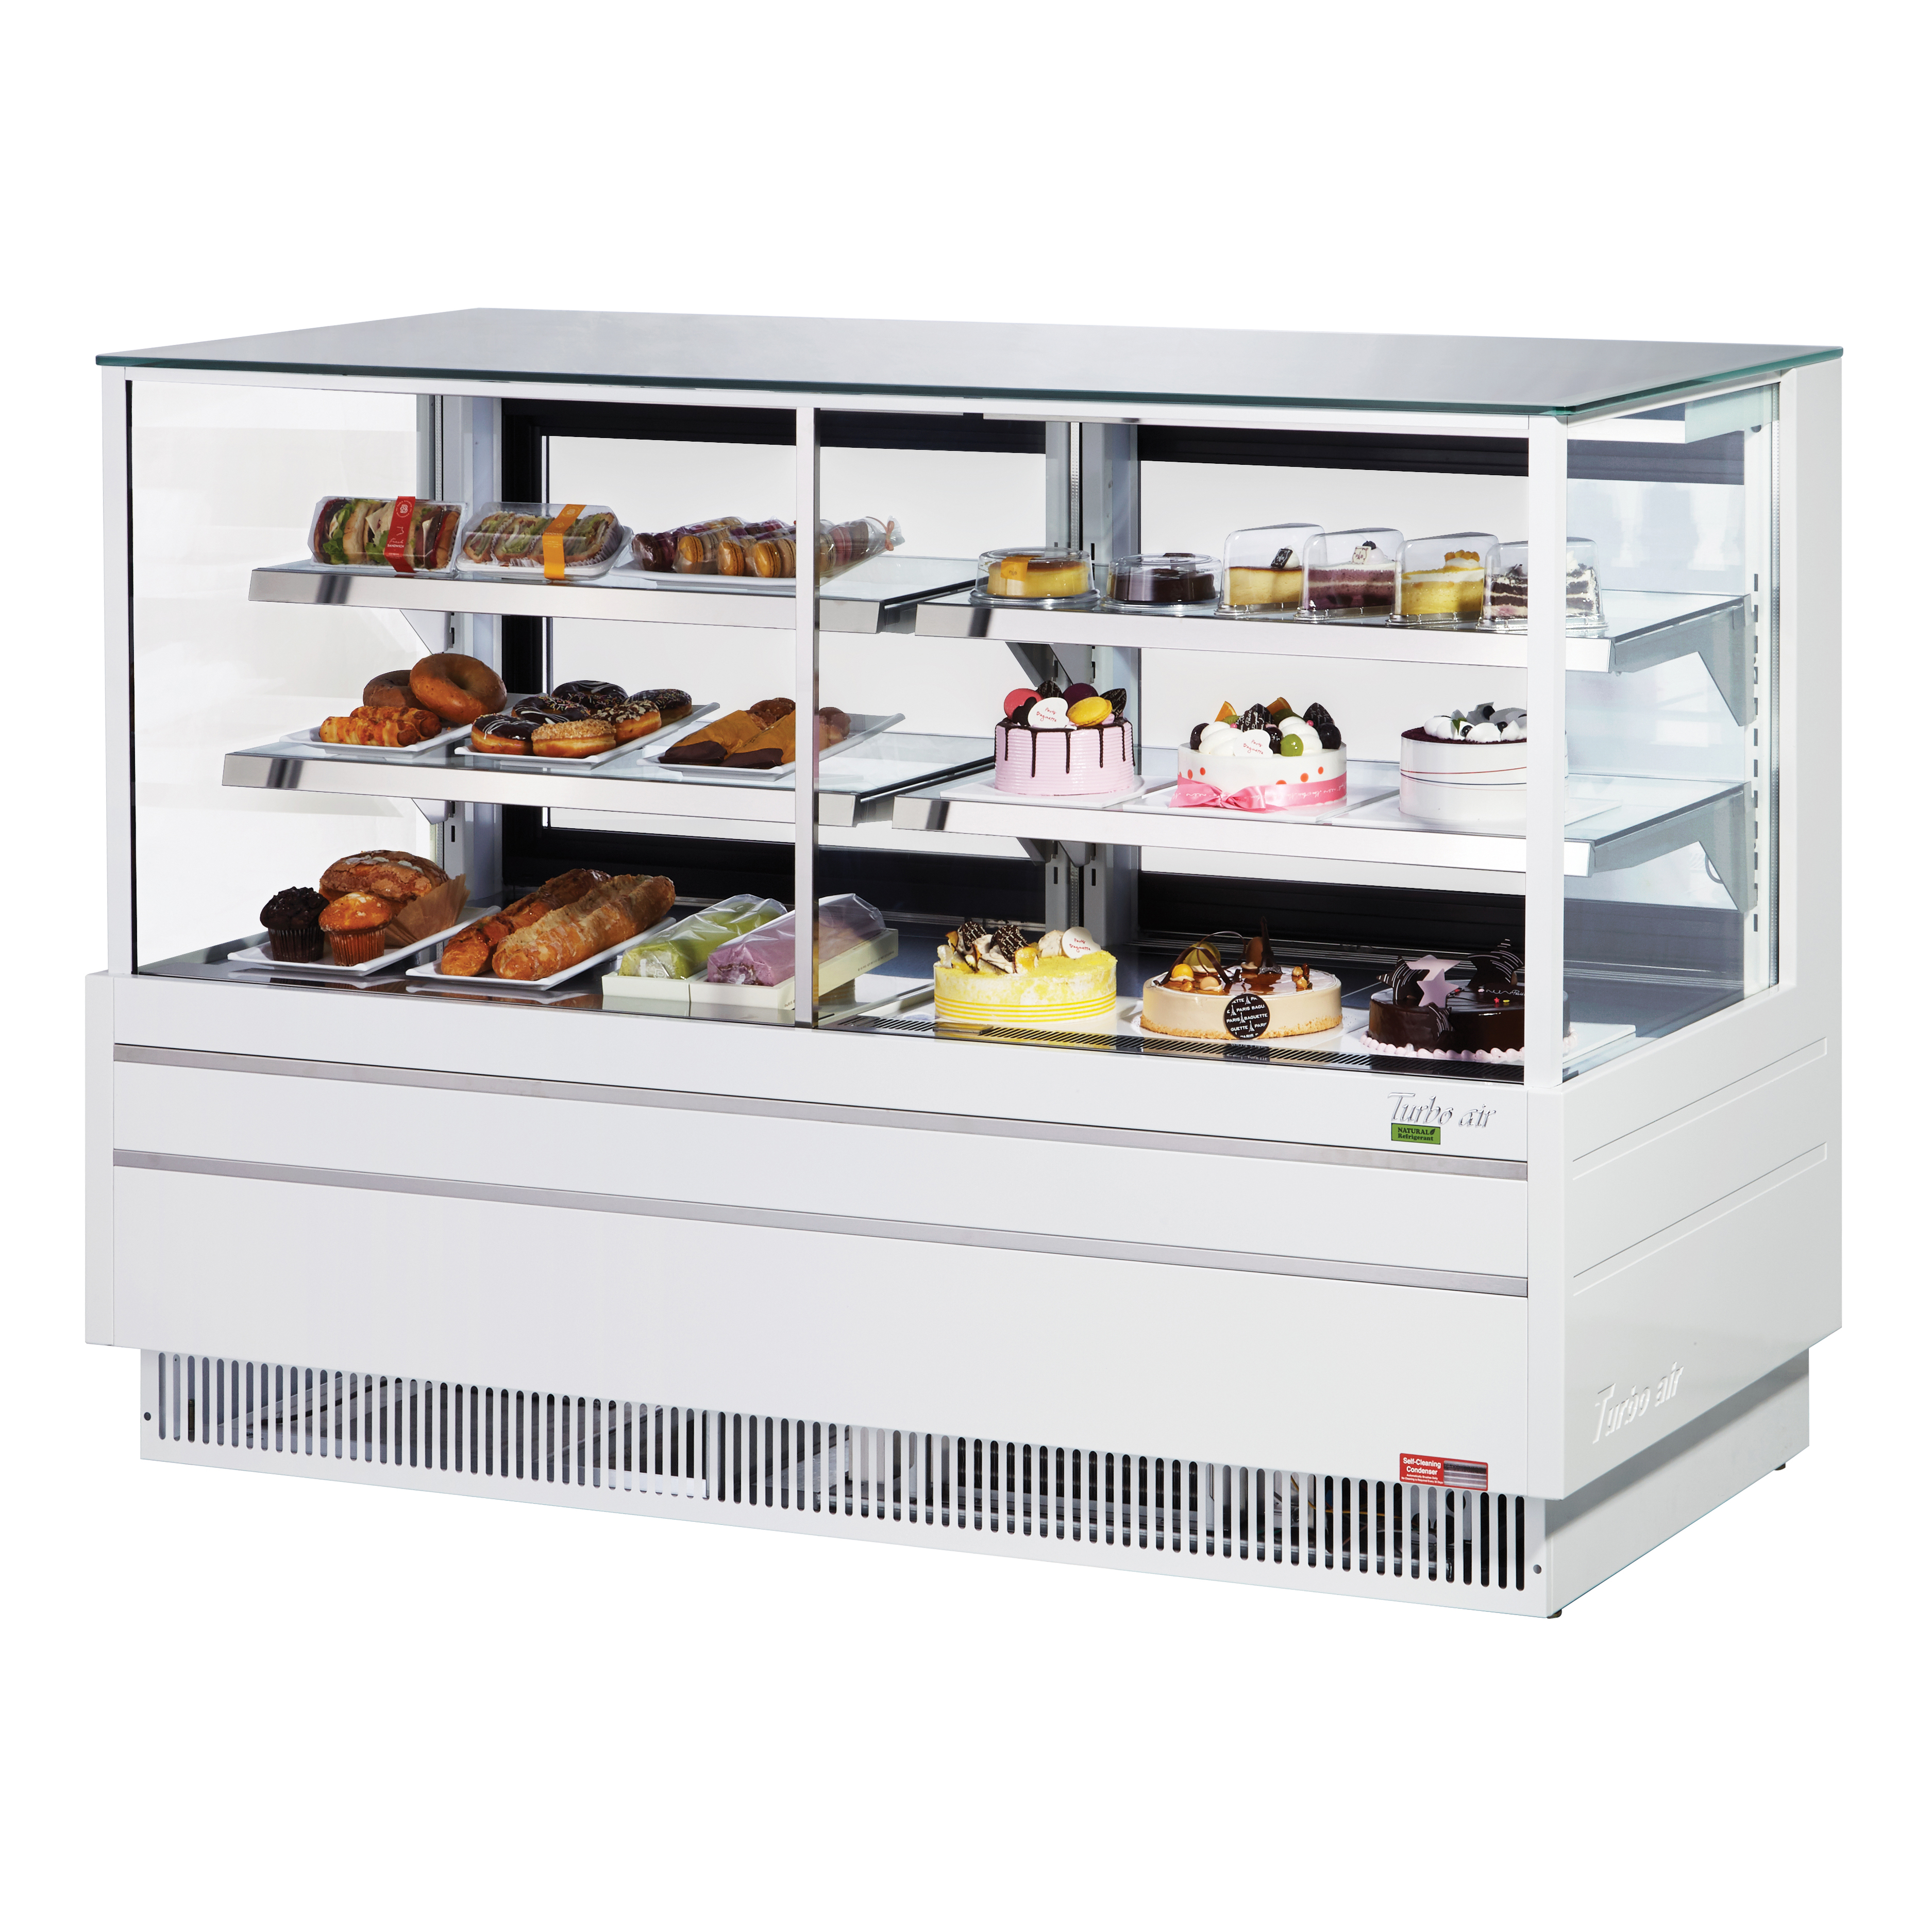 Turbo Air TCGB-60UF-CO-W(B)-N display case, refrigerated